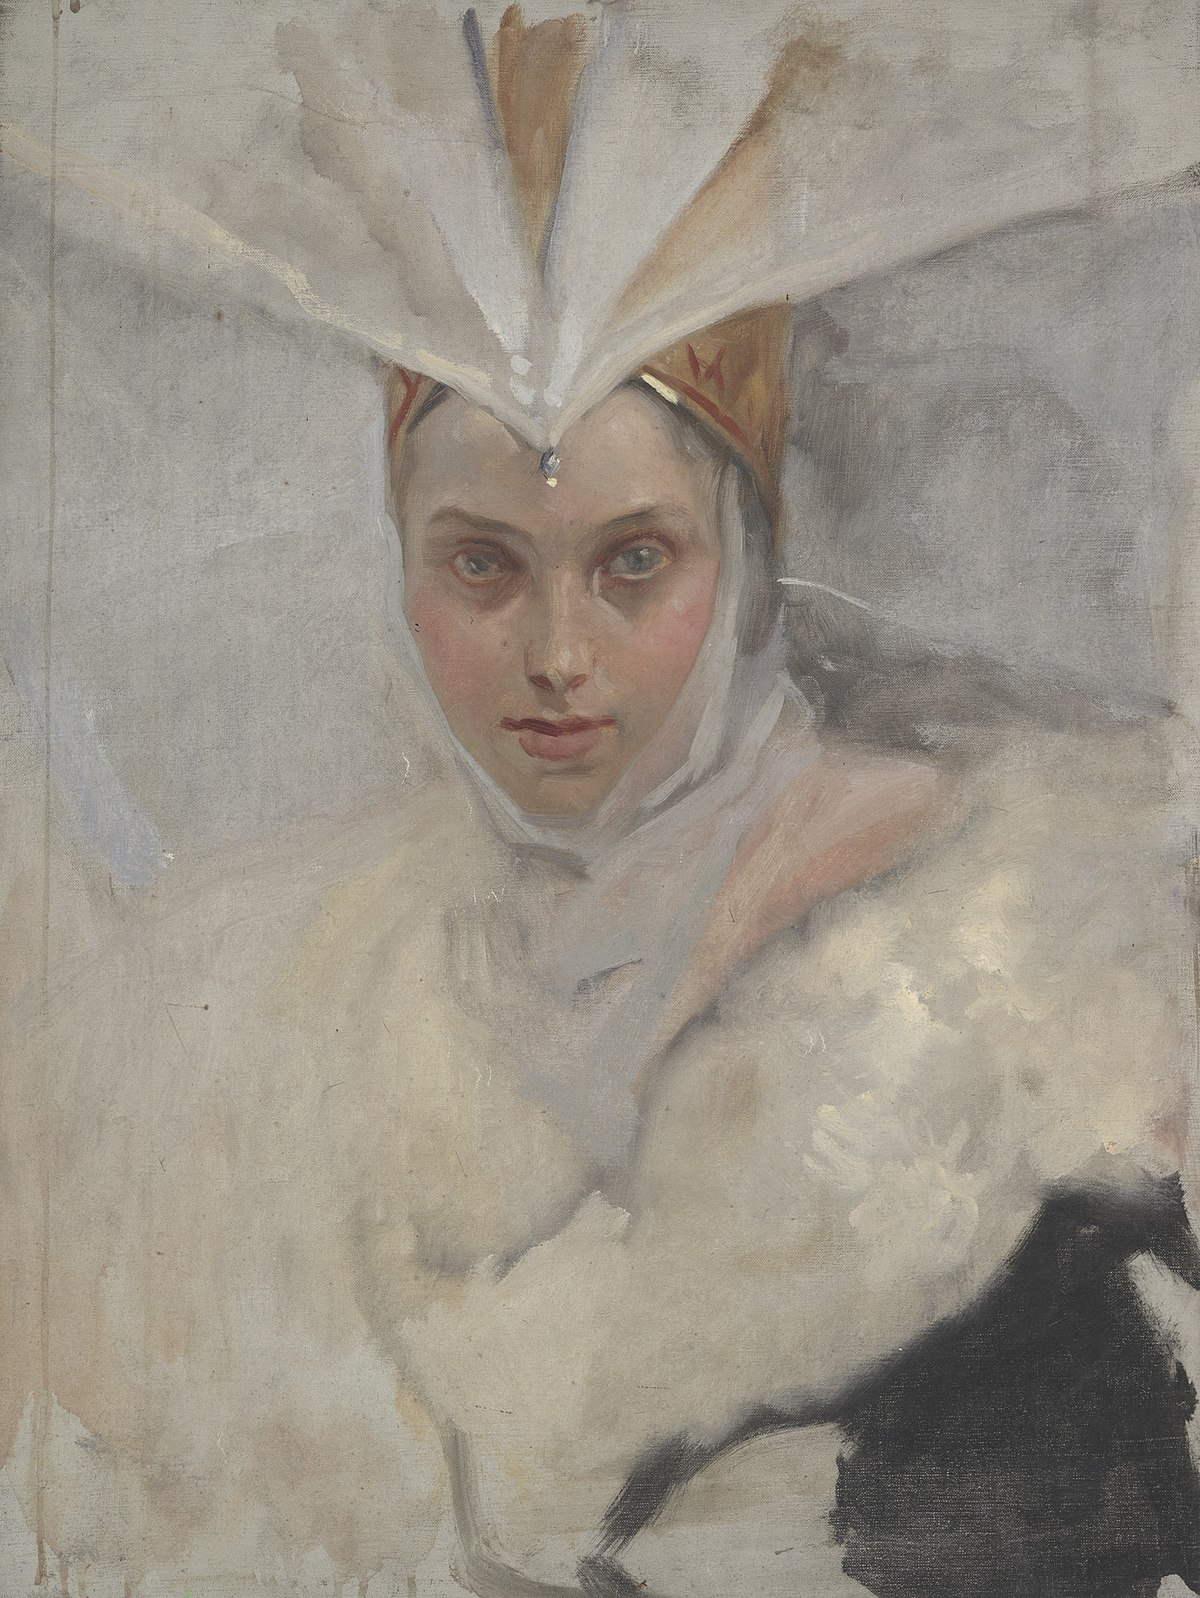 bce03ea9580 Woman with osprey headdress and white fur collar - Wikidata